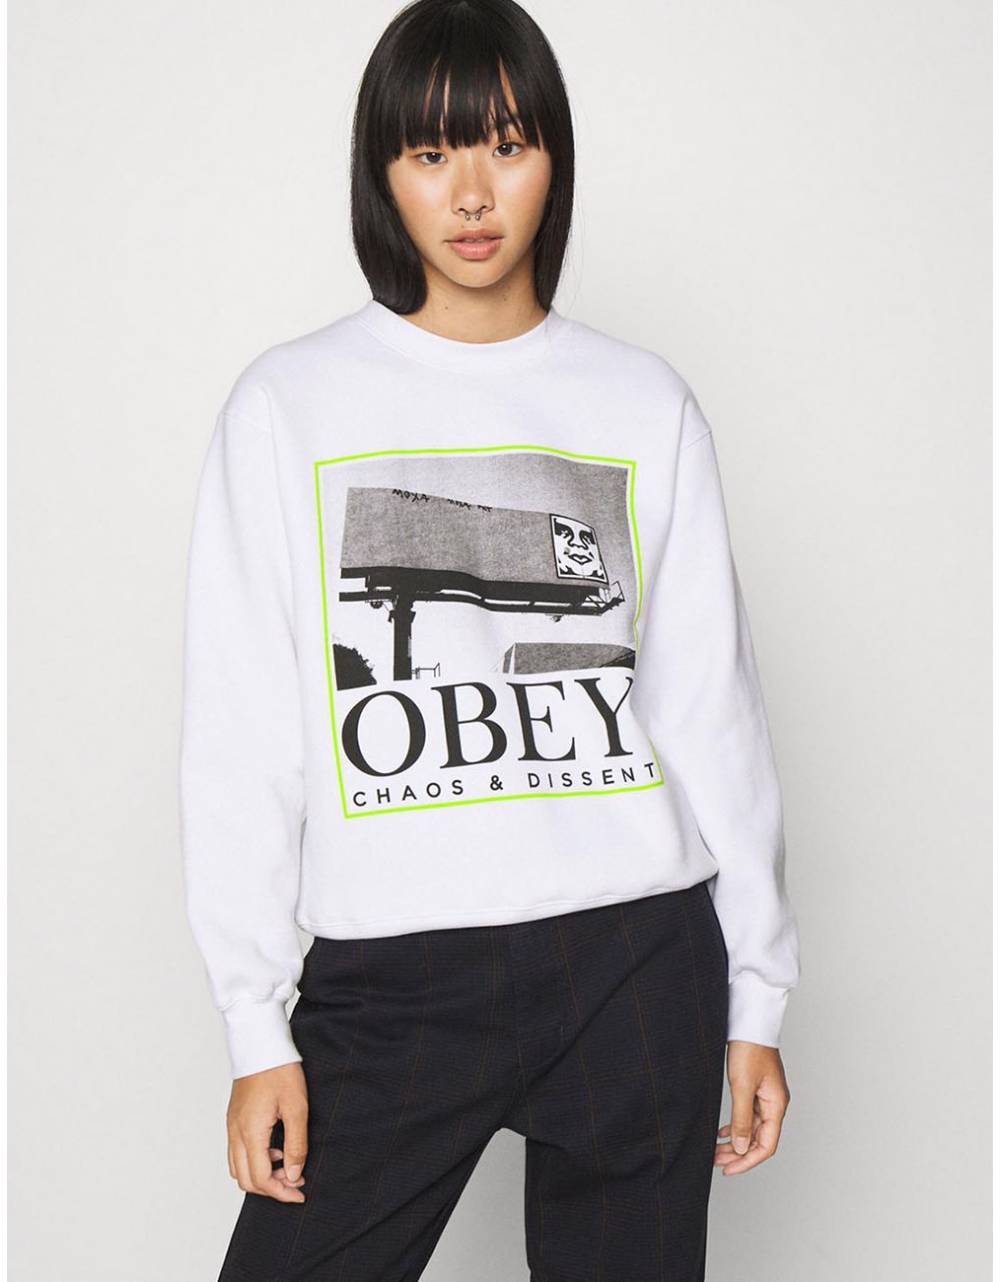 Obey Woman chaos & dissent box fit crewneck sweater - white obey Sweater 81,15€